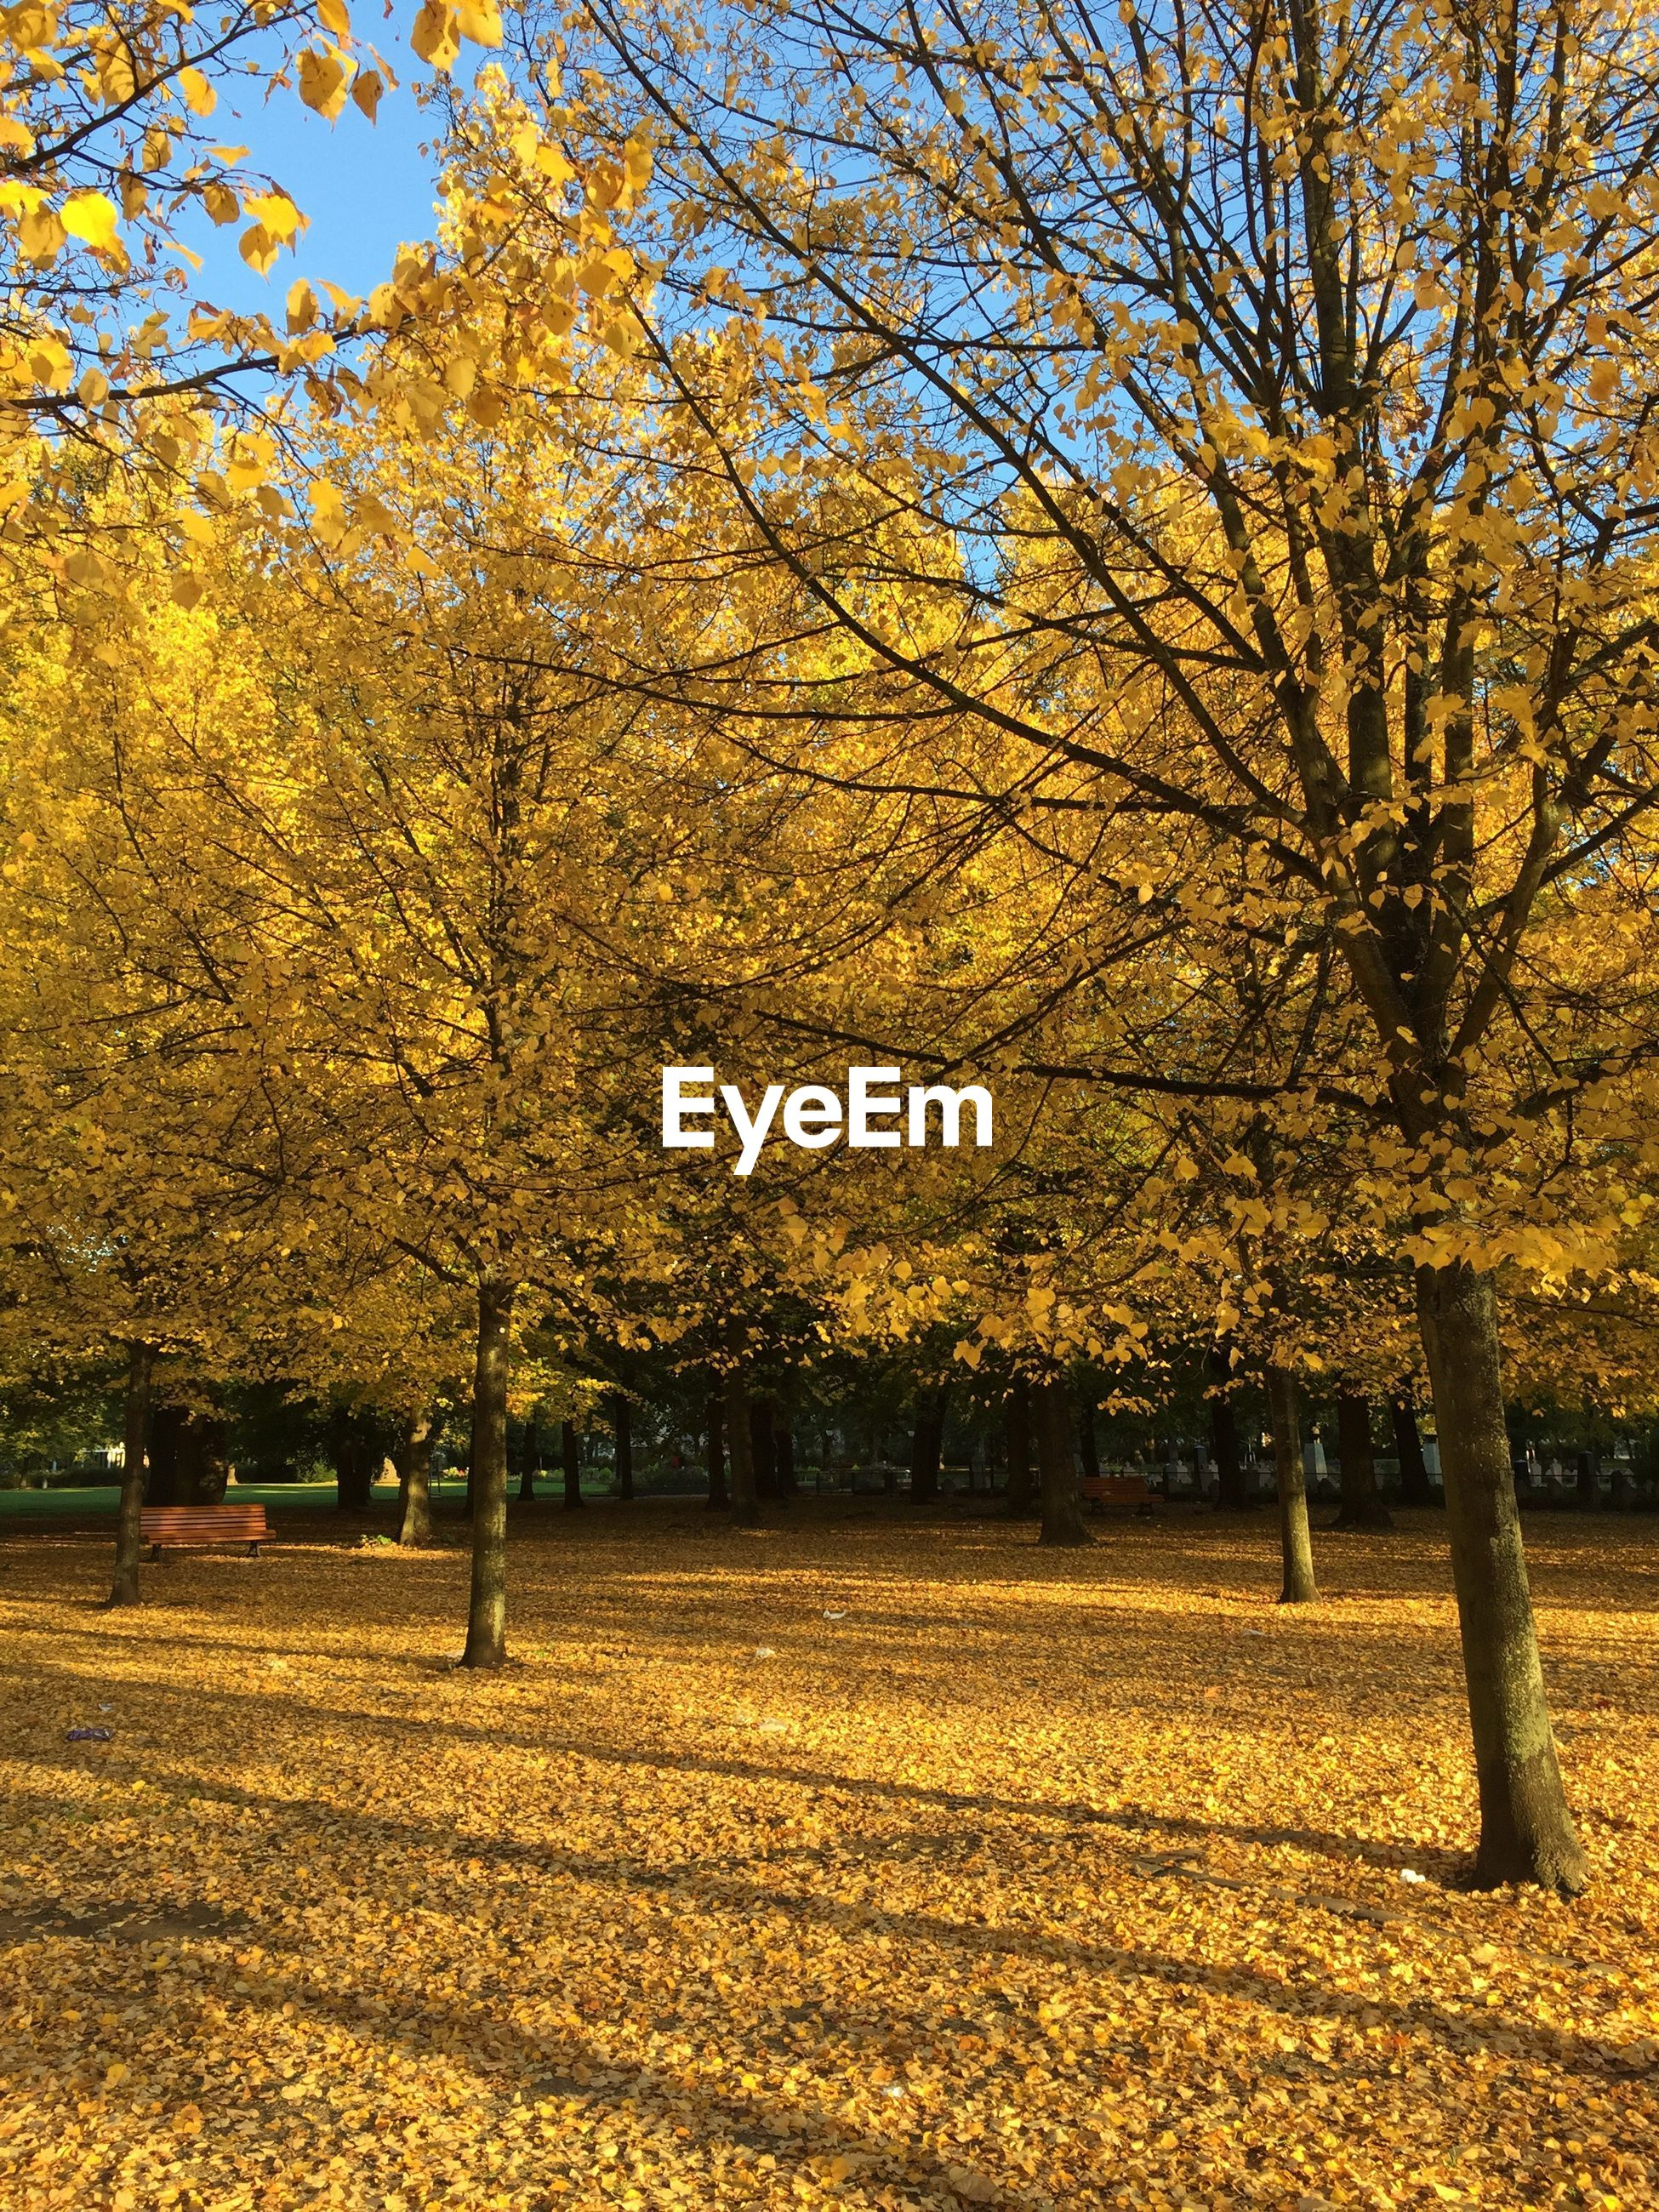 tree, change, autumn, season, tranquility, tranquil scene, beauty in nature, field, yellow, growth, scenics, branch, nature, park - man made space, tree trunk, park, day, outdoors, non-urban scene, treelined, no people, grassy, solitude